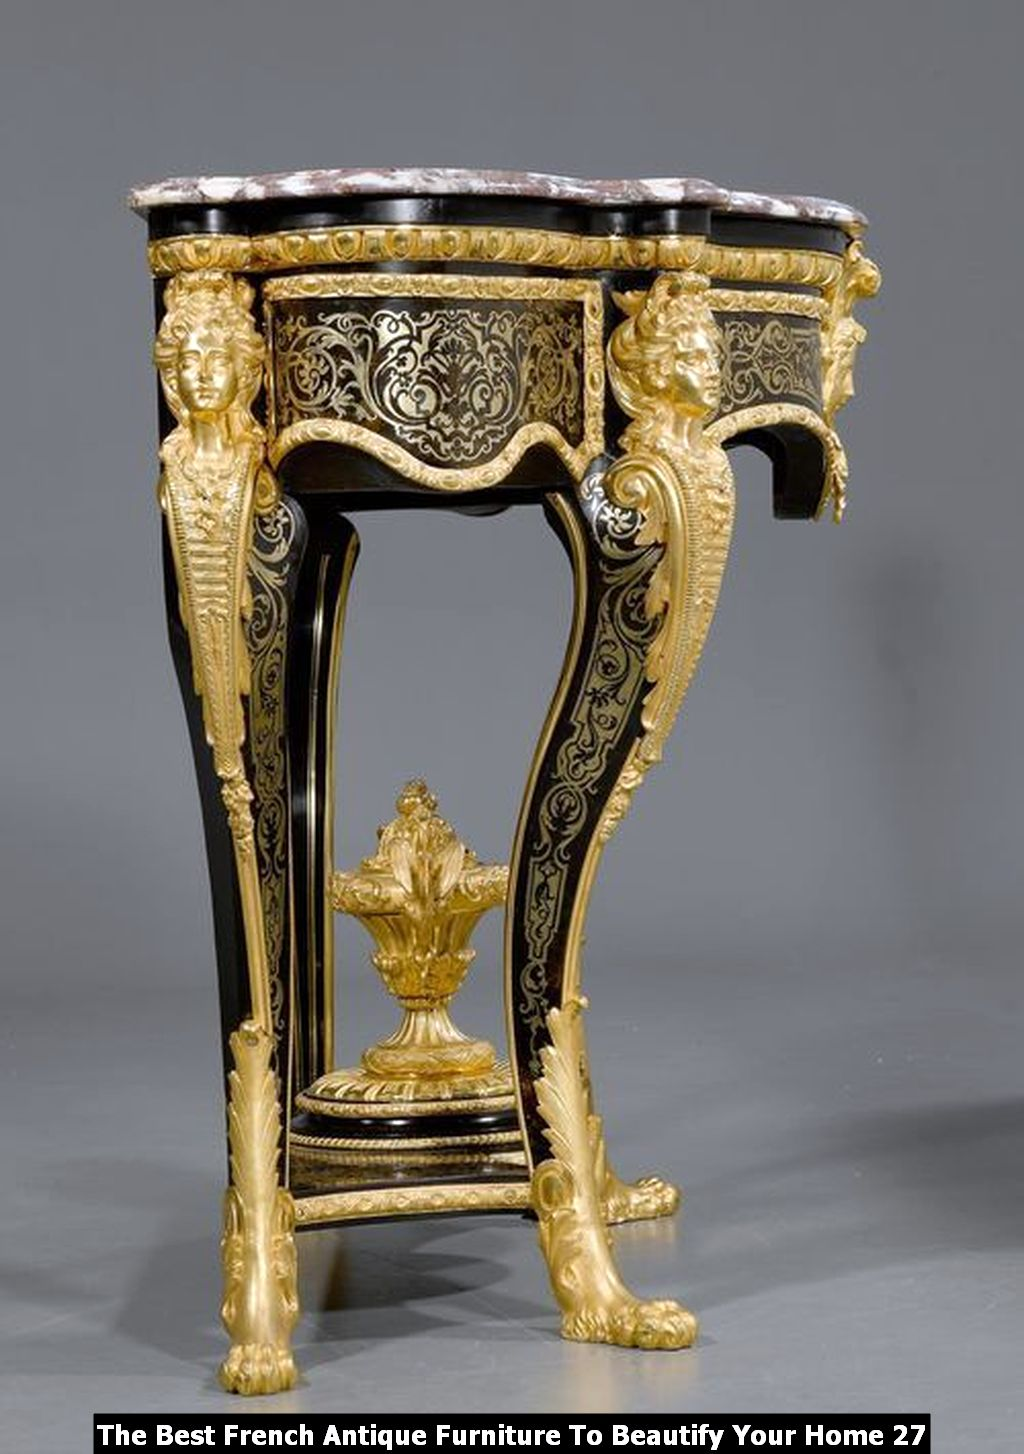 The Best French Antique Furniture To Beautify Your Home 27